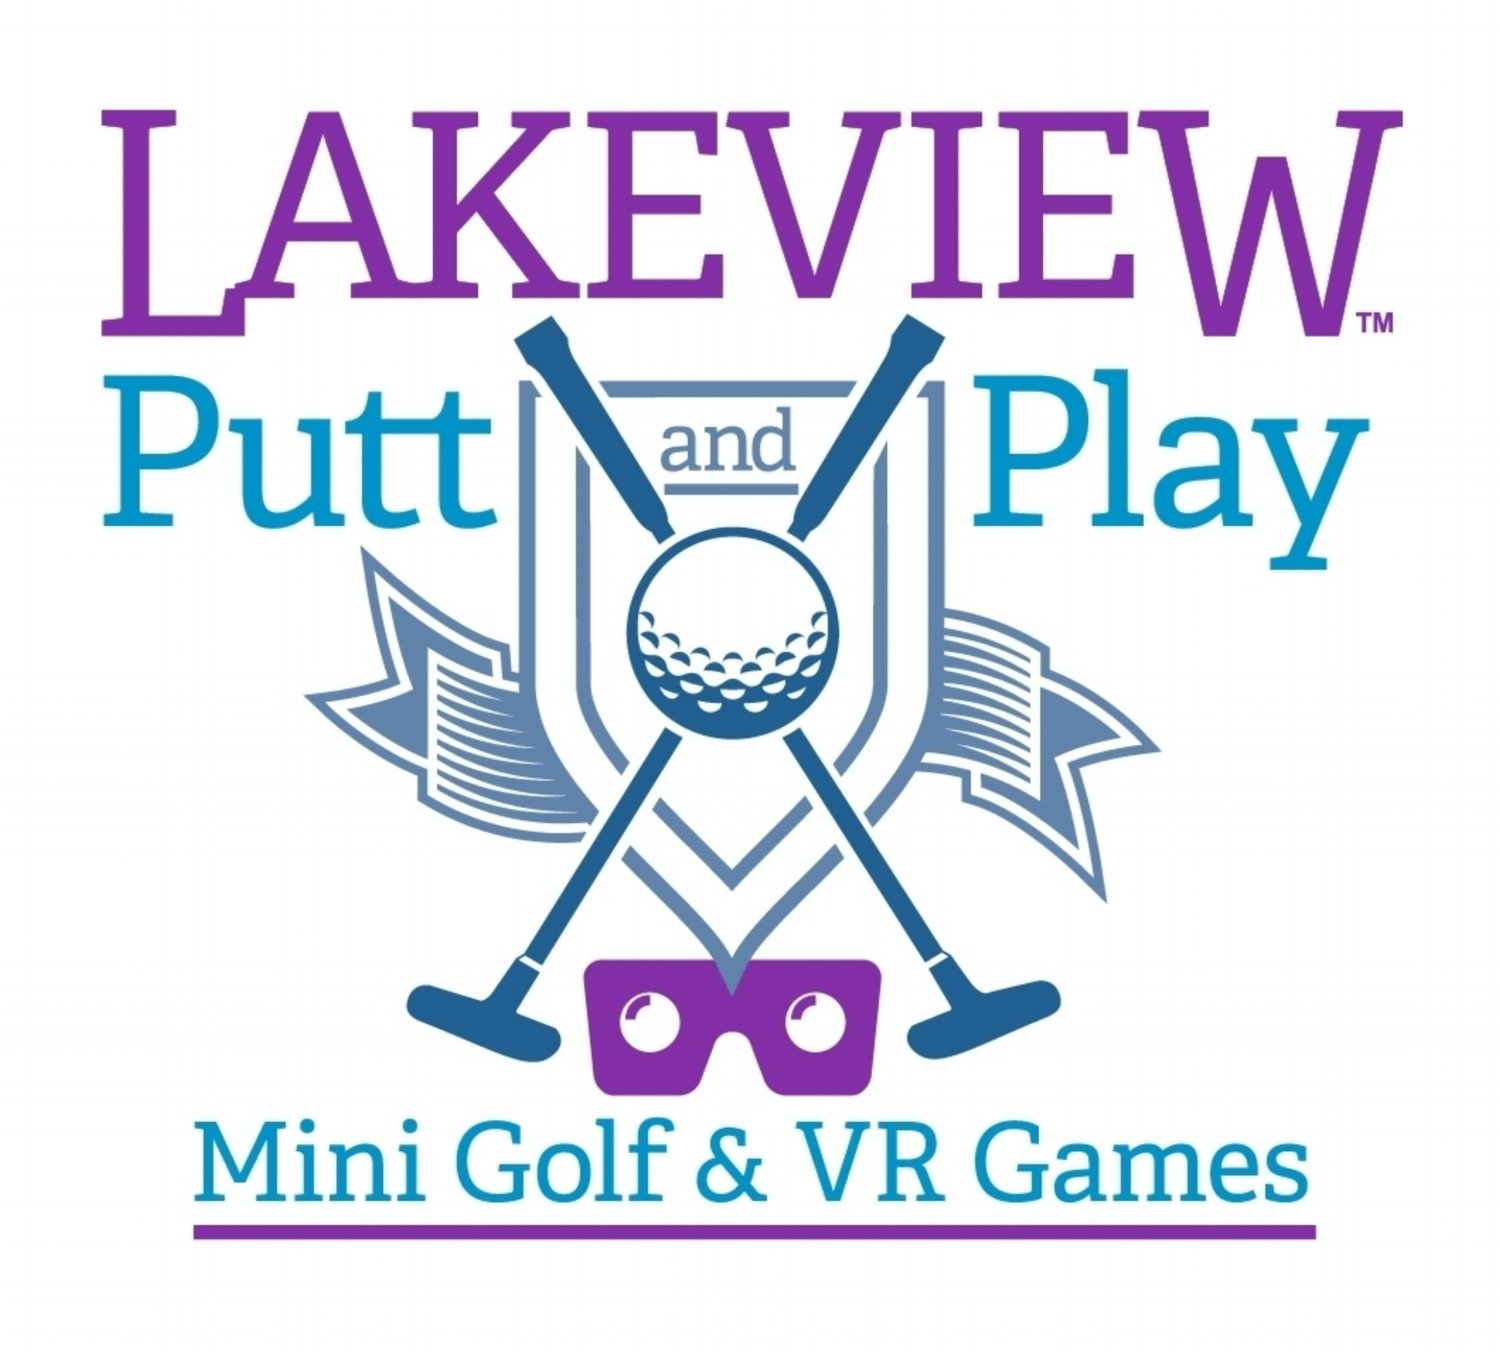 Lakeview Putt & Play